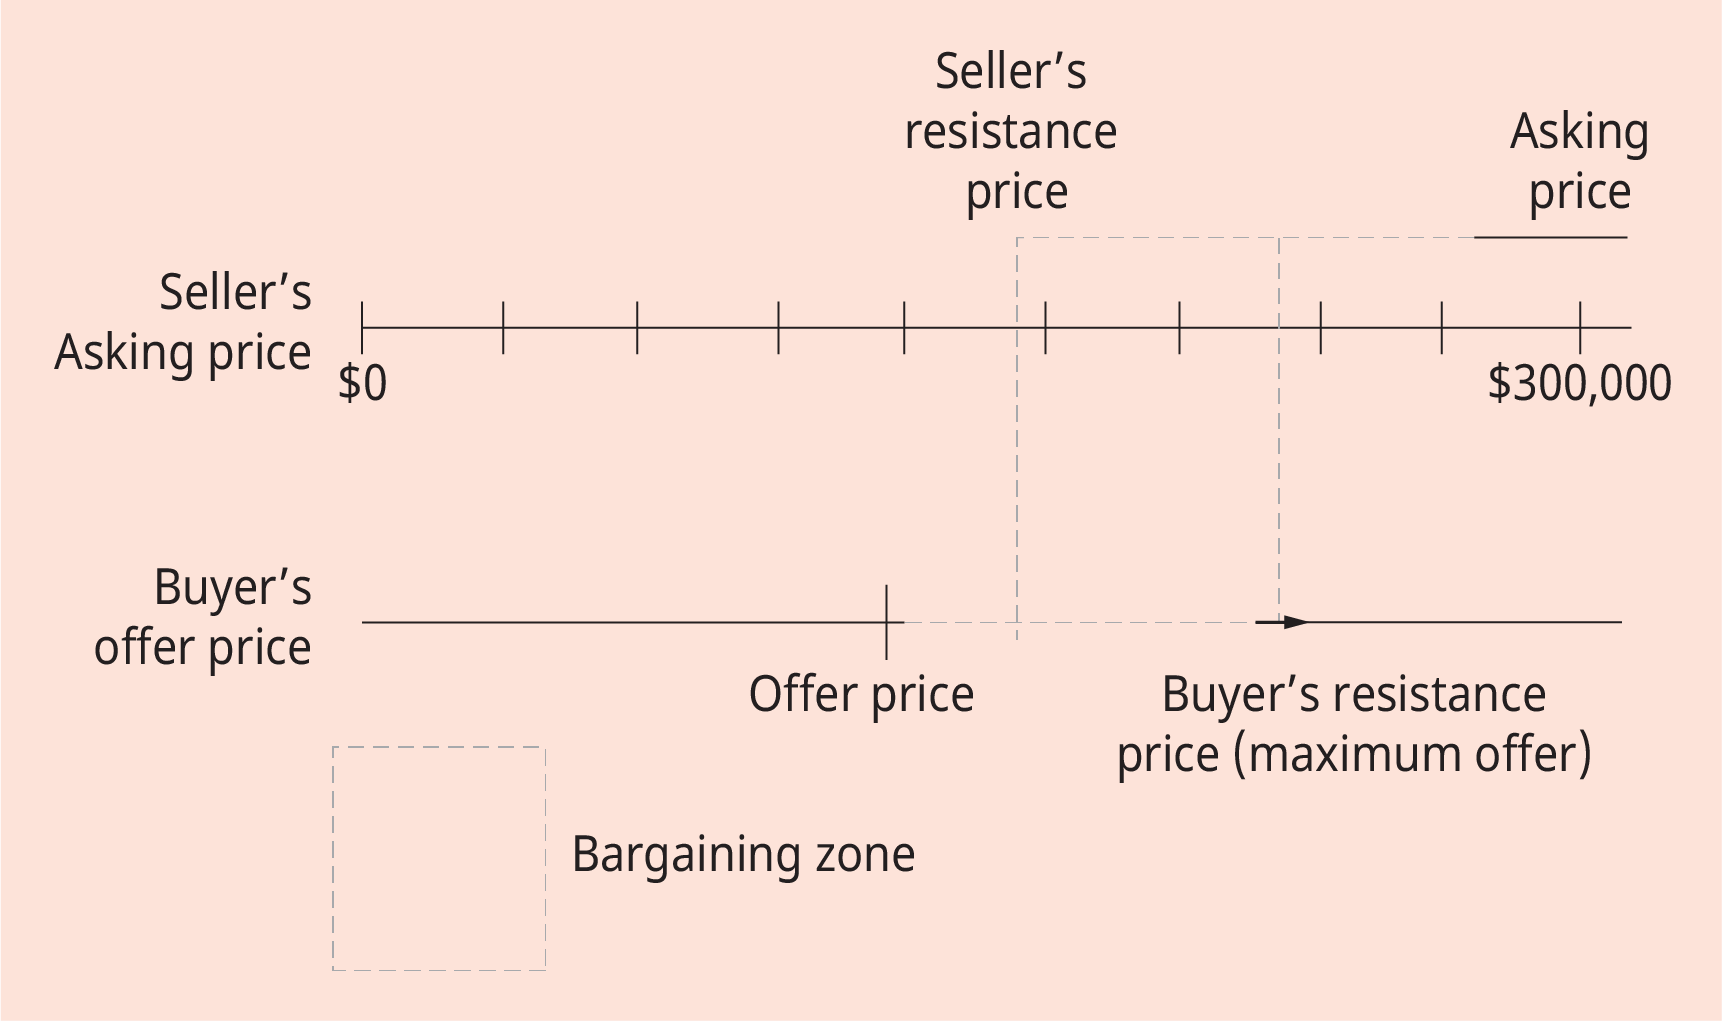 An illustration depicting the distributive bargaining in buying a home.